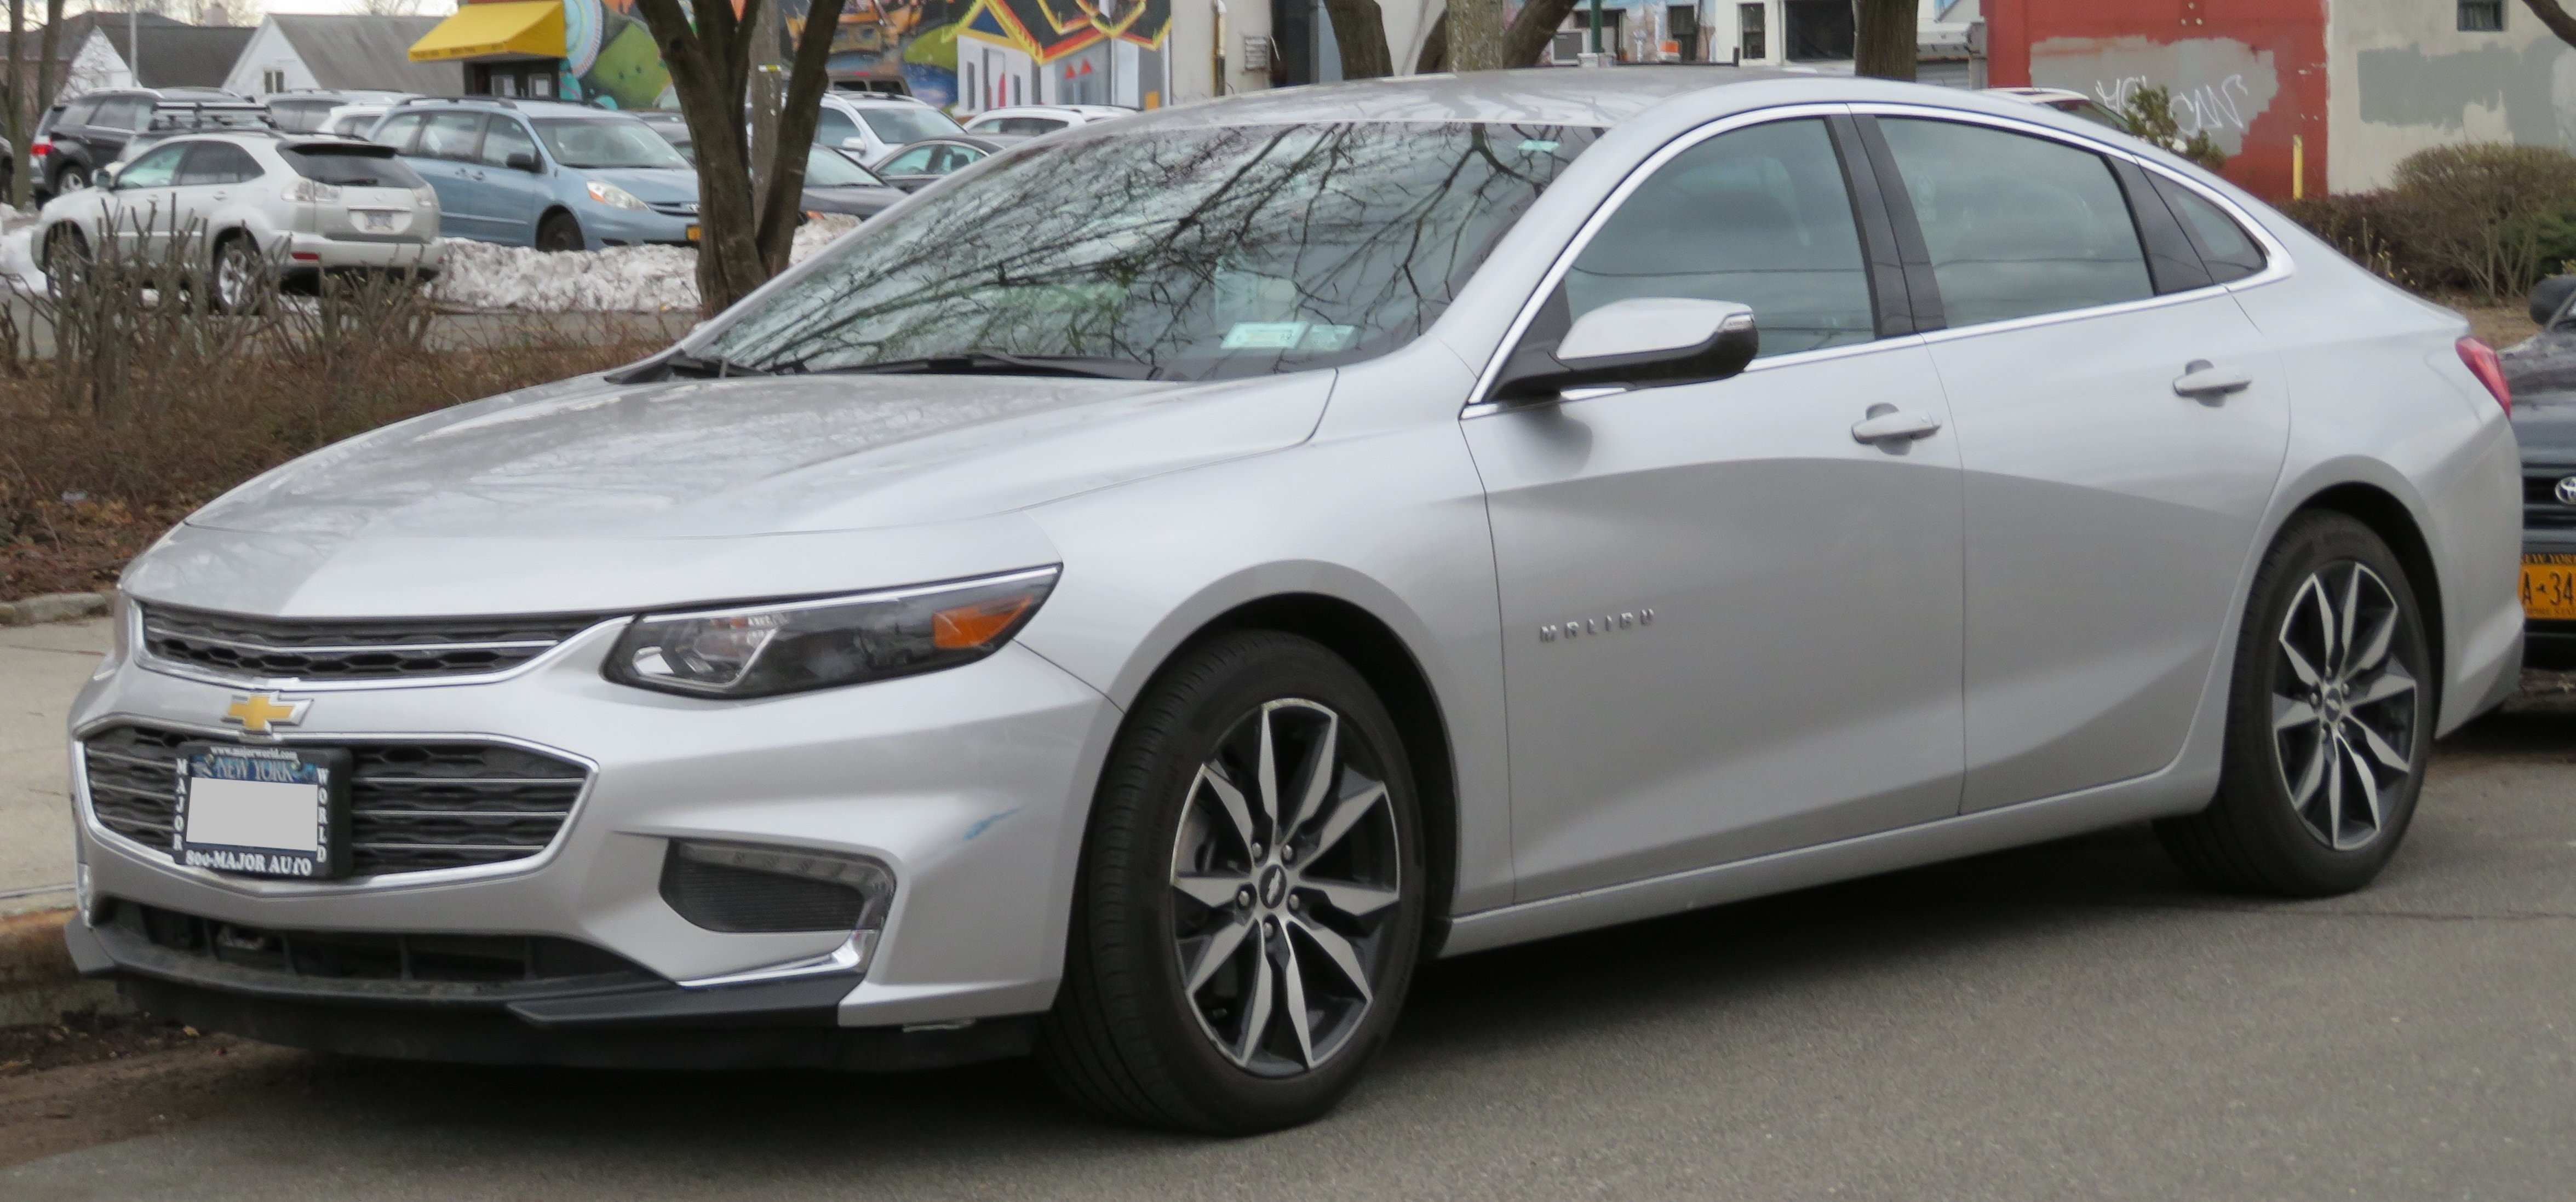 53 The Best 2019 Chevy Impala Ss Ltz Spesification